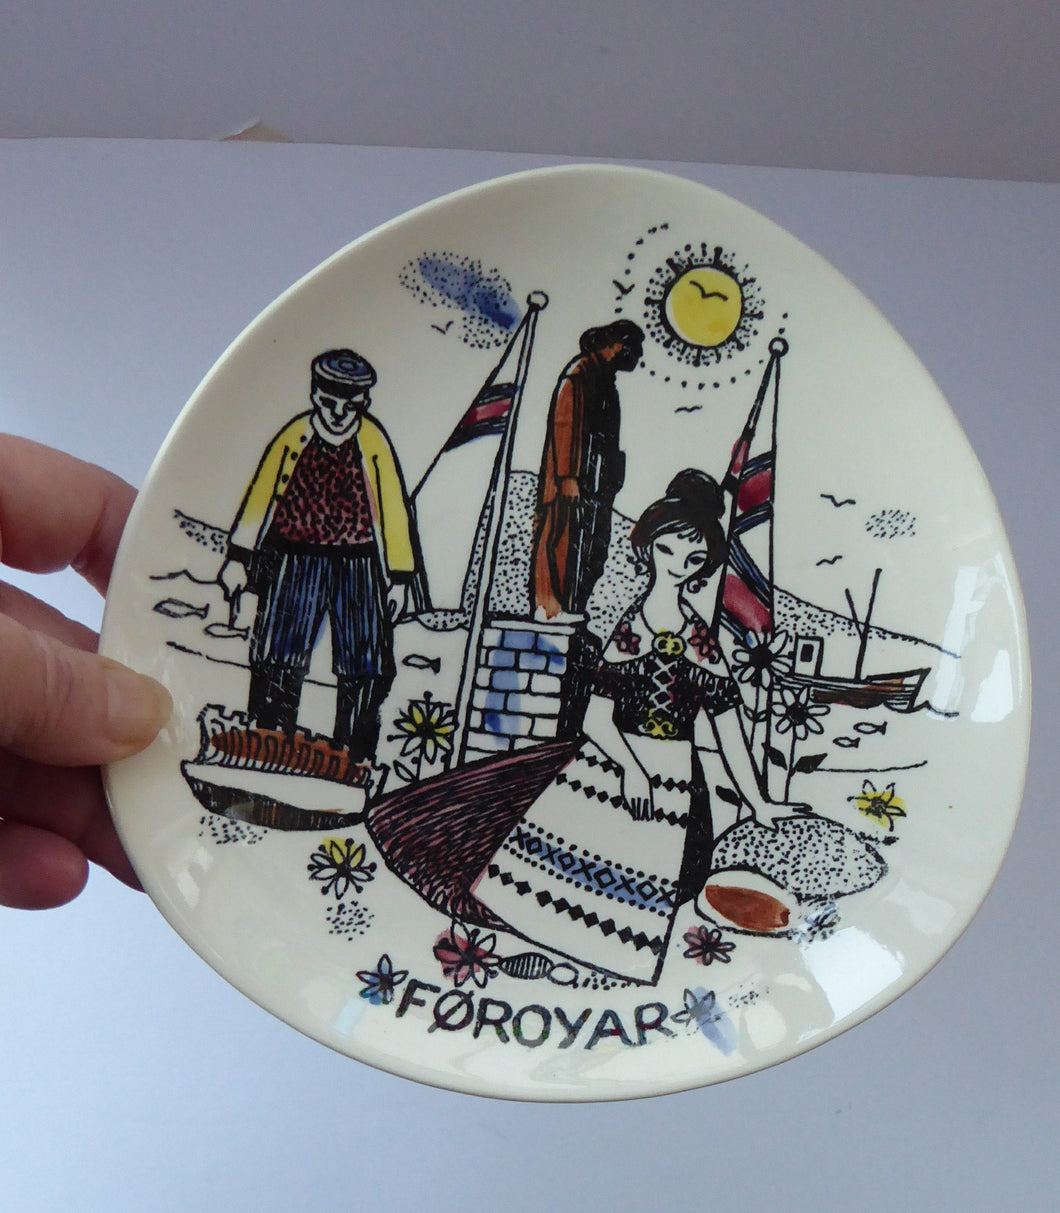 Rare Vintage FOROYAR or FAROE ISLANDS Decorative Plate.  Fisherman and Fishwife. 7 inches